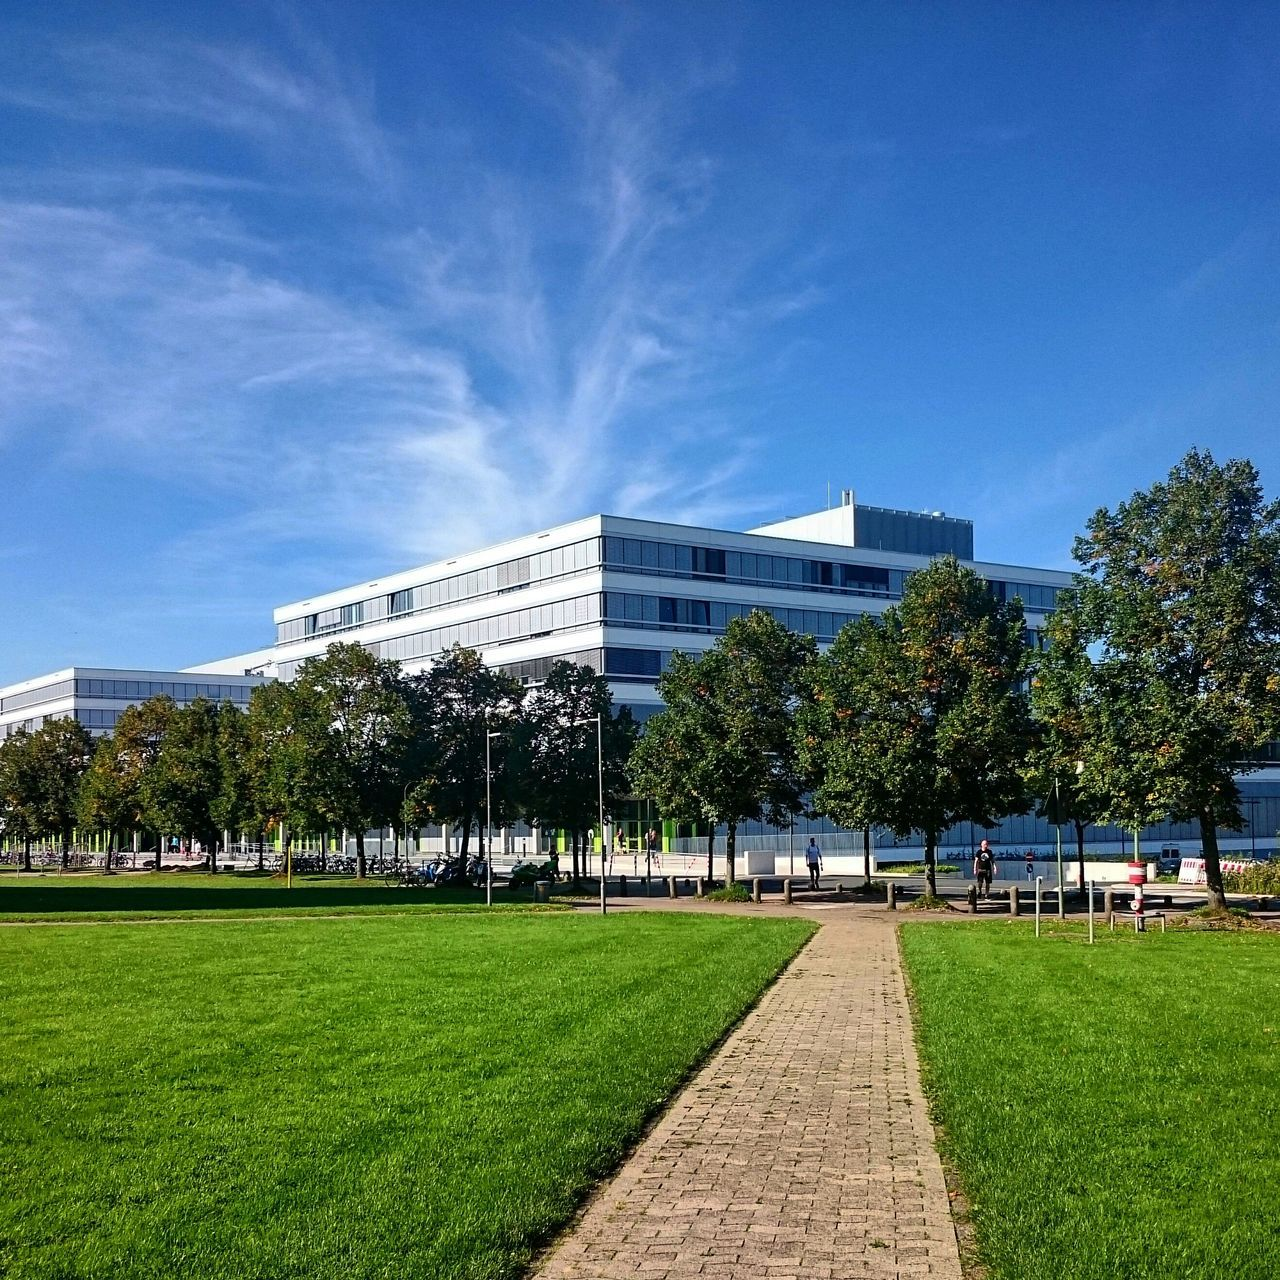 architecture, tree, grass, built structure, building exterior, sky, day, green color, modern, lawn, outdoors, park - man made space, travel destinations, growth, no people, plant, city, nature